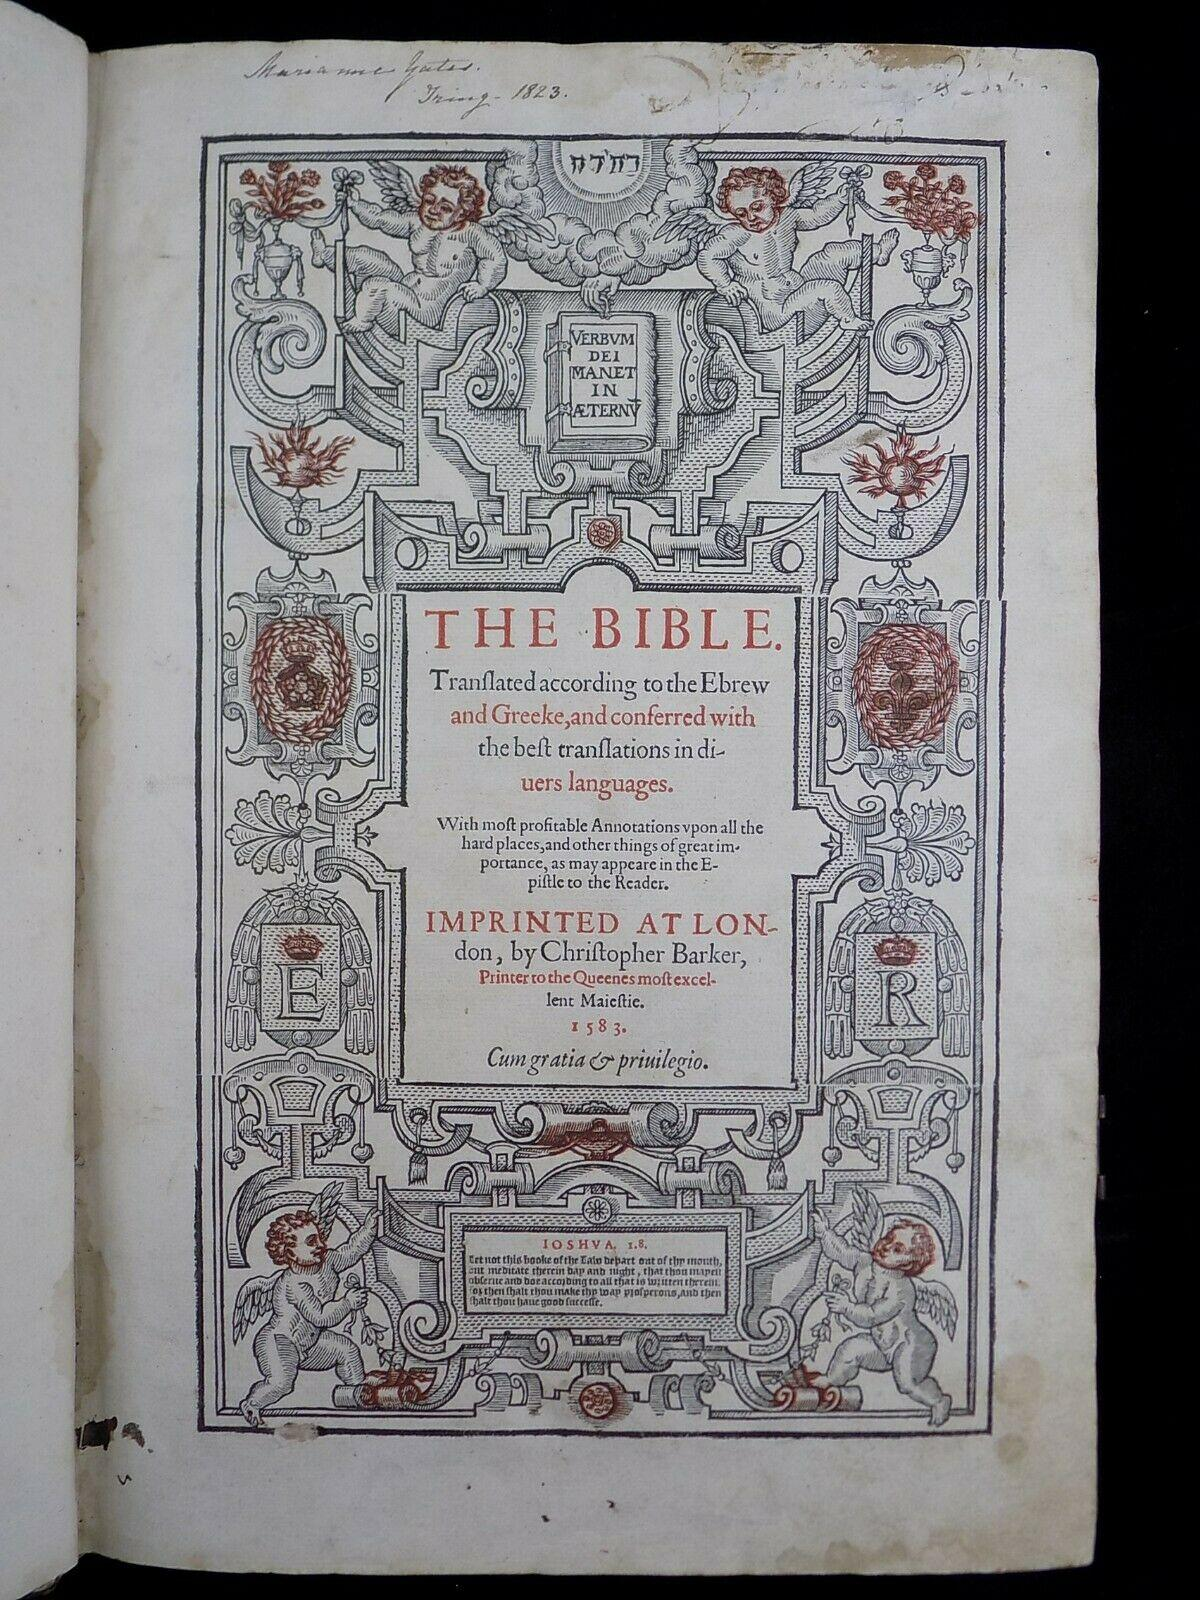 1583 GENEVA BIBLE GENERAL TITLE LEAF 316 ANTIQUE BIBLES